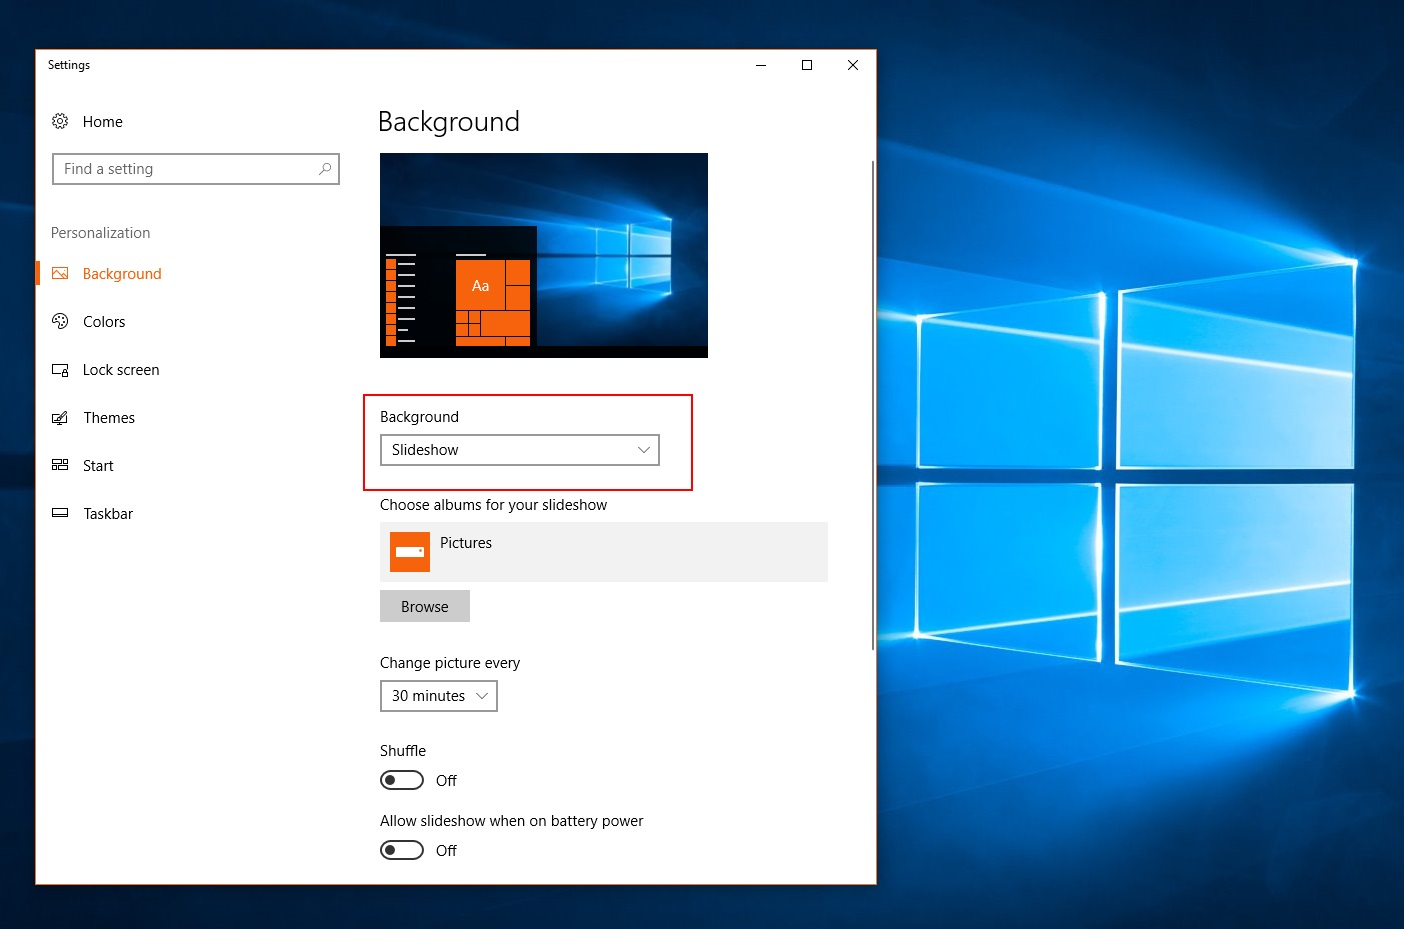 Background settings in Windows 10